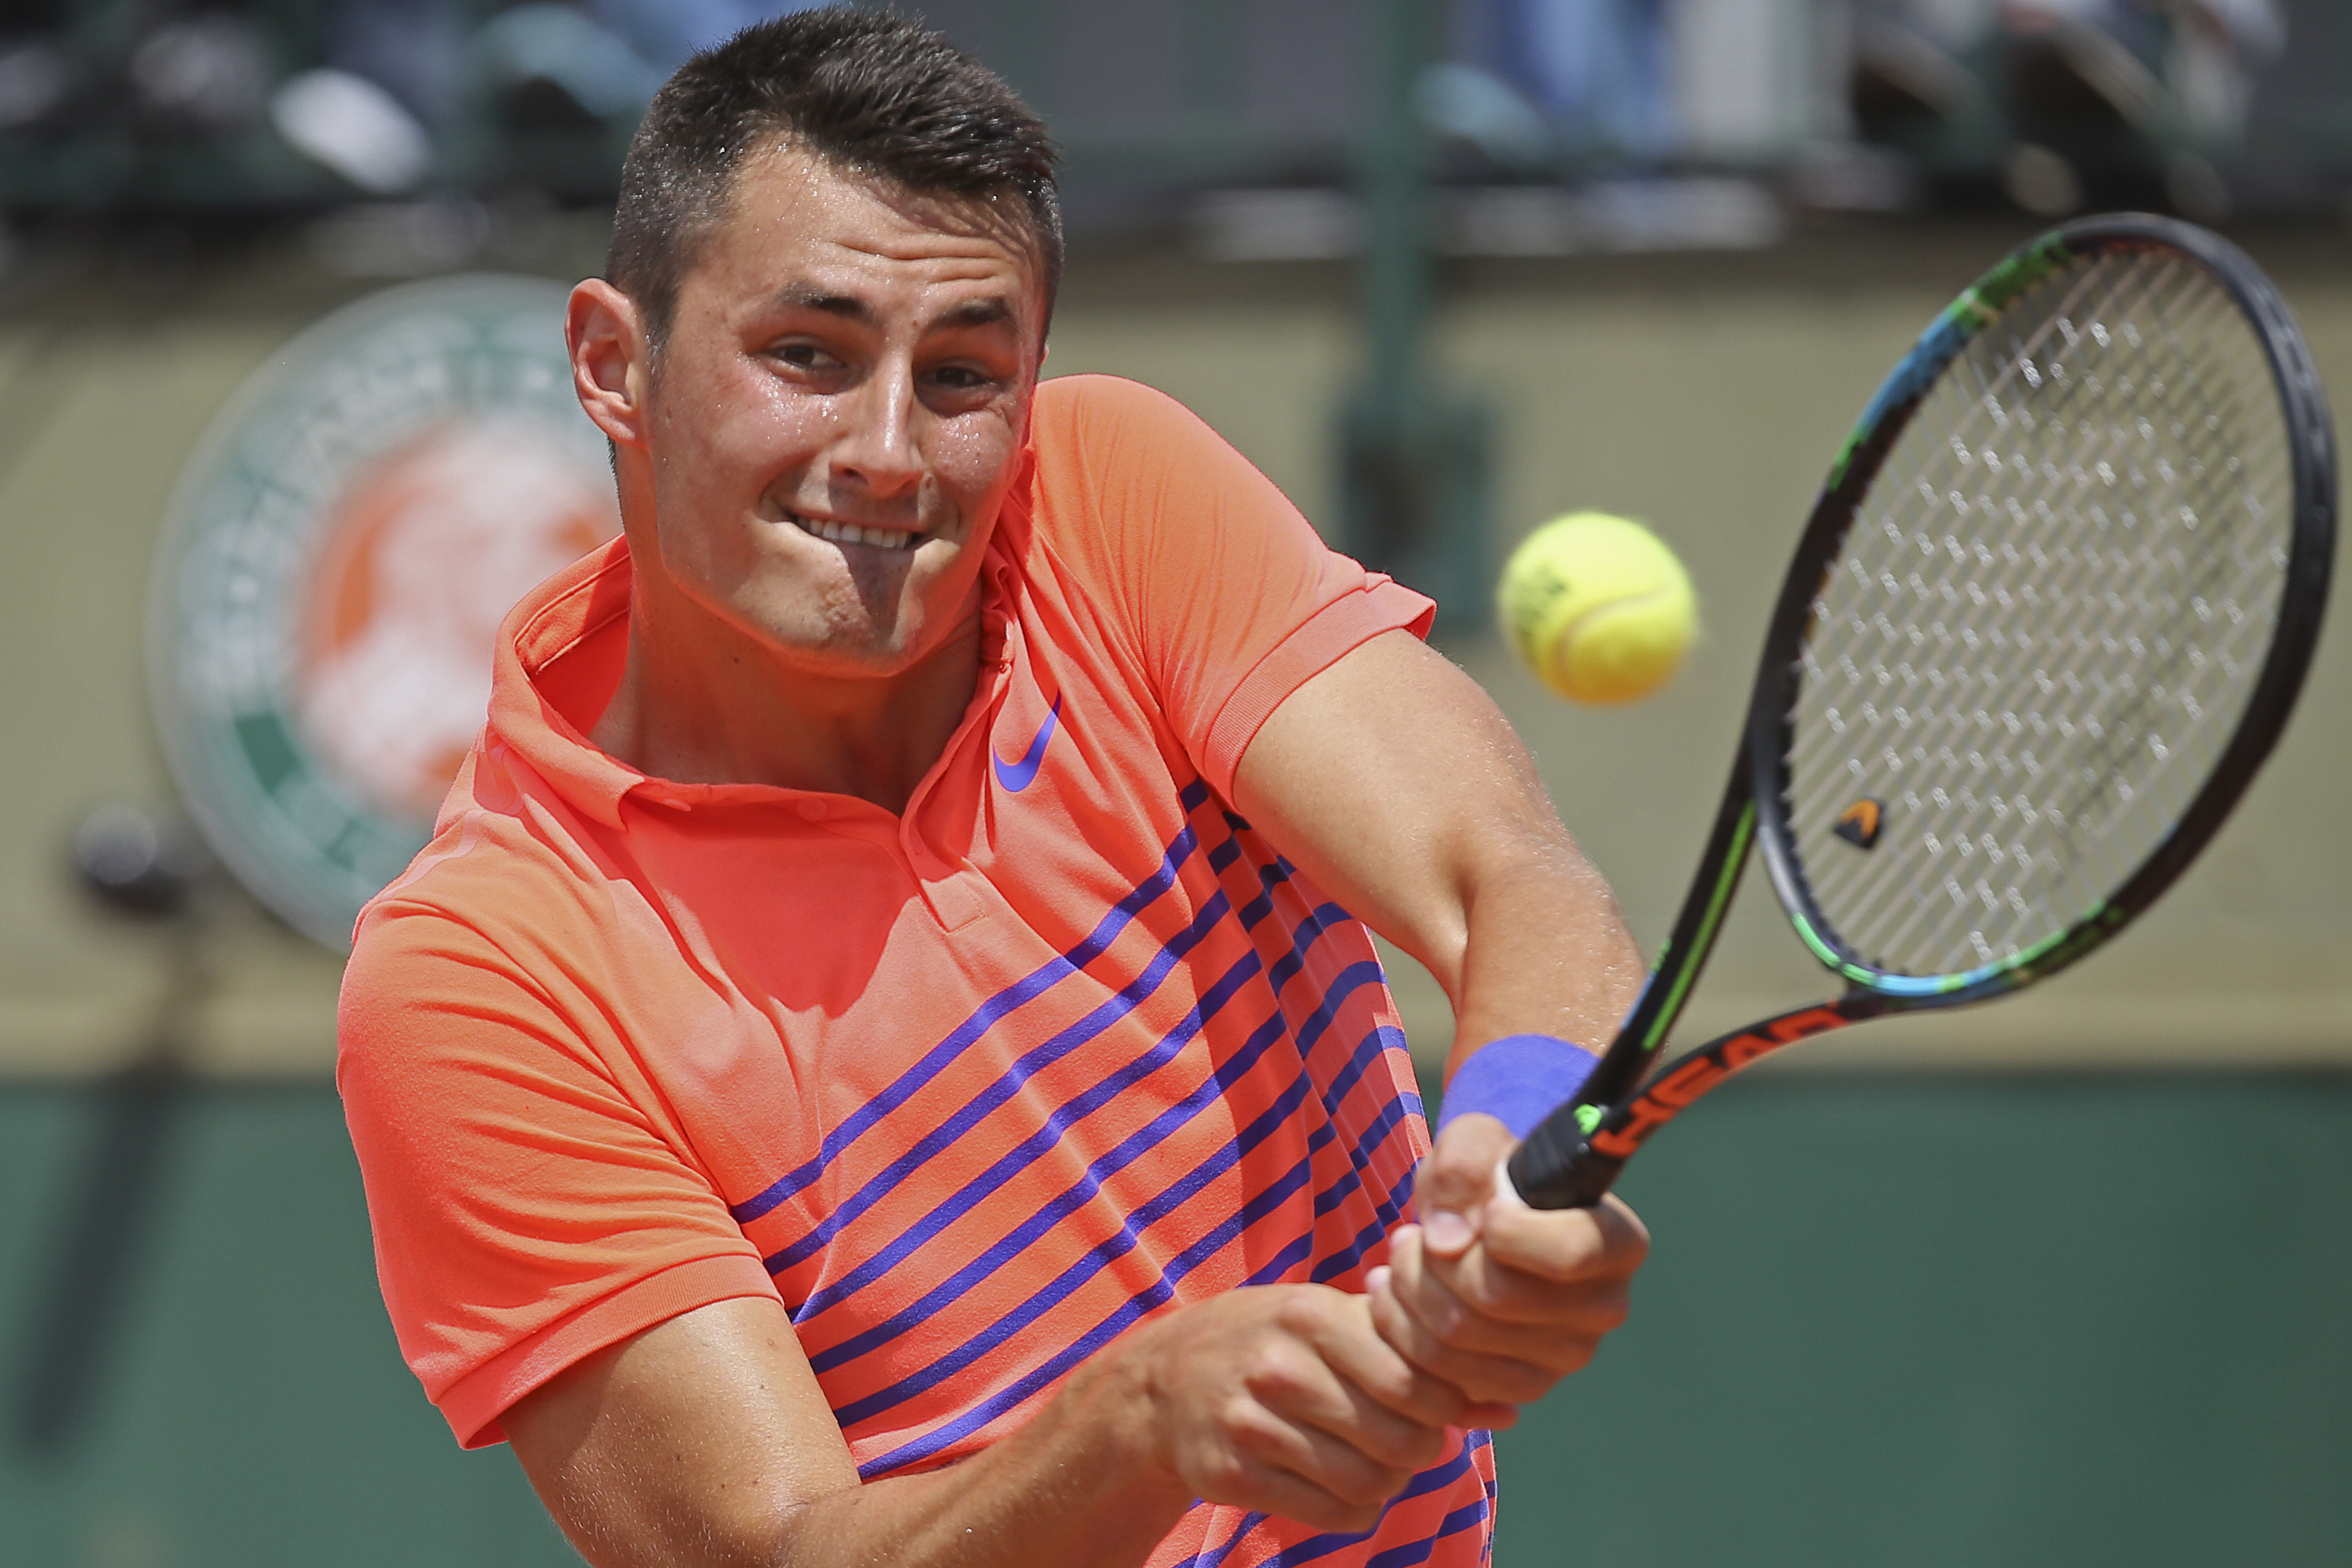 Australia's Bernard Tomic returns in the first round match of the French Open tennis tournament against Italy's Luca Vanni at the Roland Garros stadium, in Paris, France, Monday, May 25, 2015. (AP Photo/David Vincent)